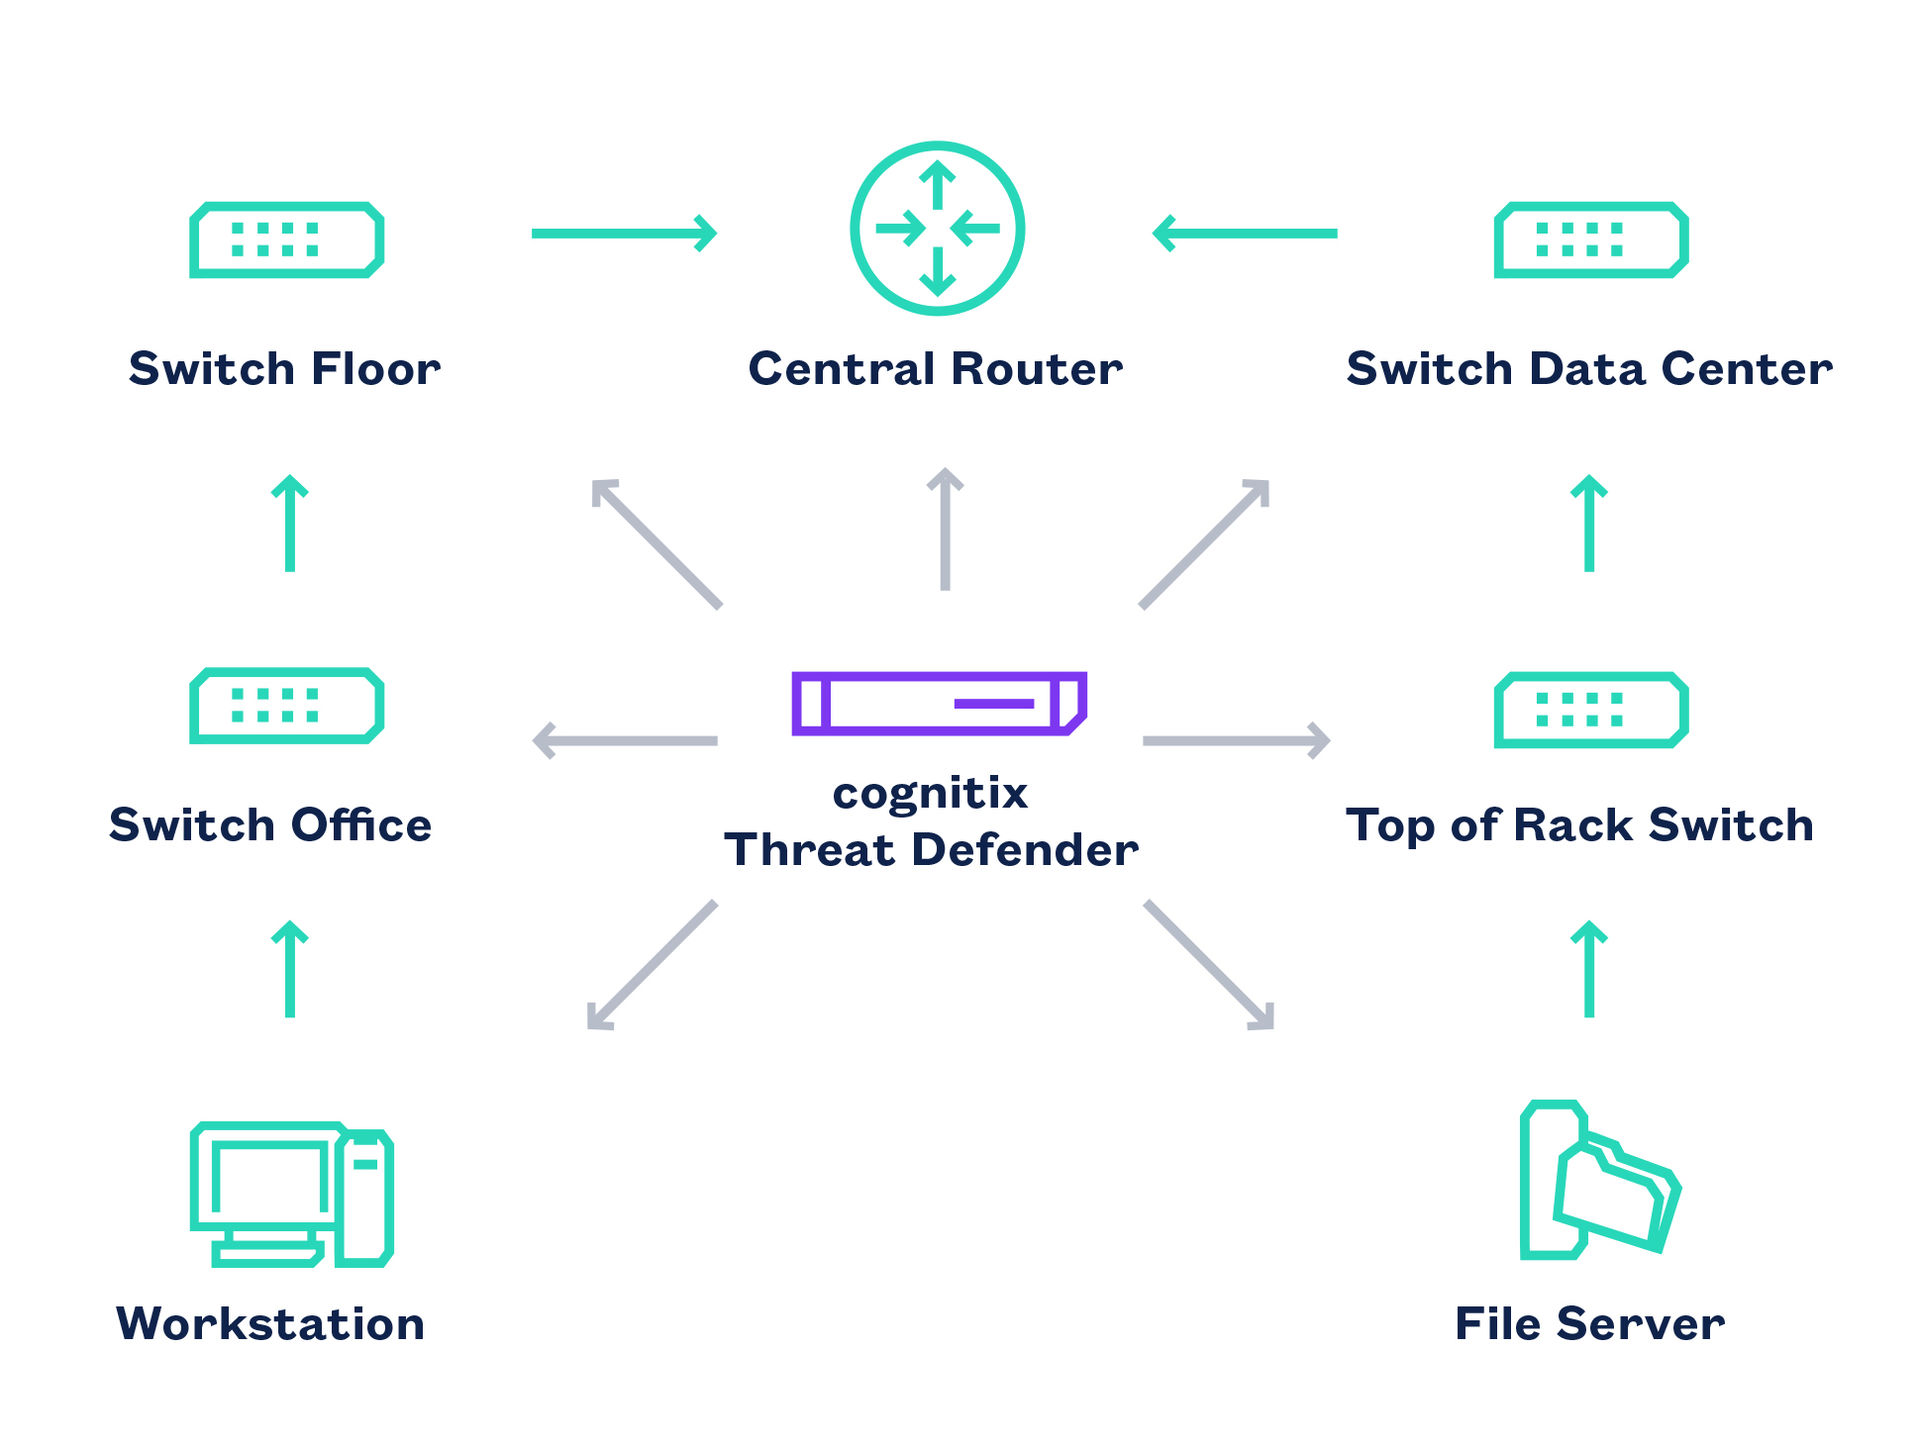 Illustration of cognitix Threat Defender Integration within the Network